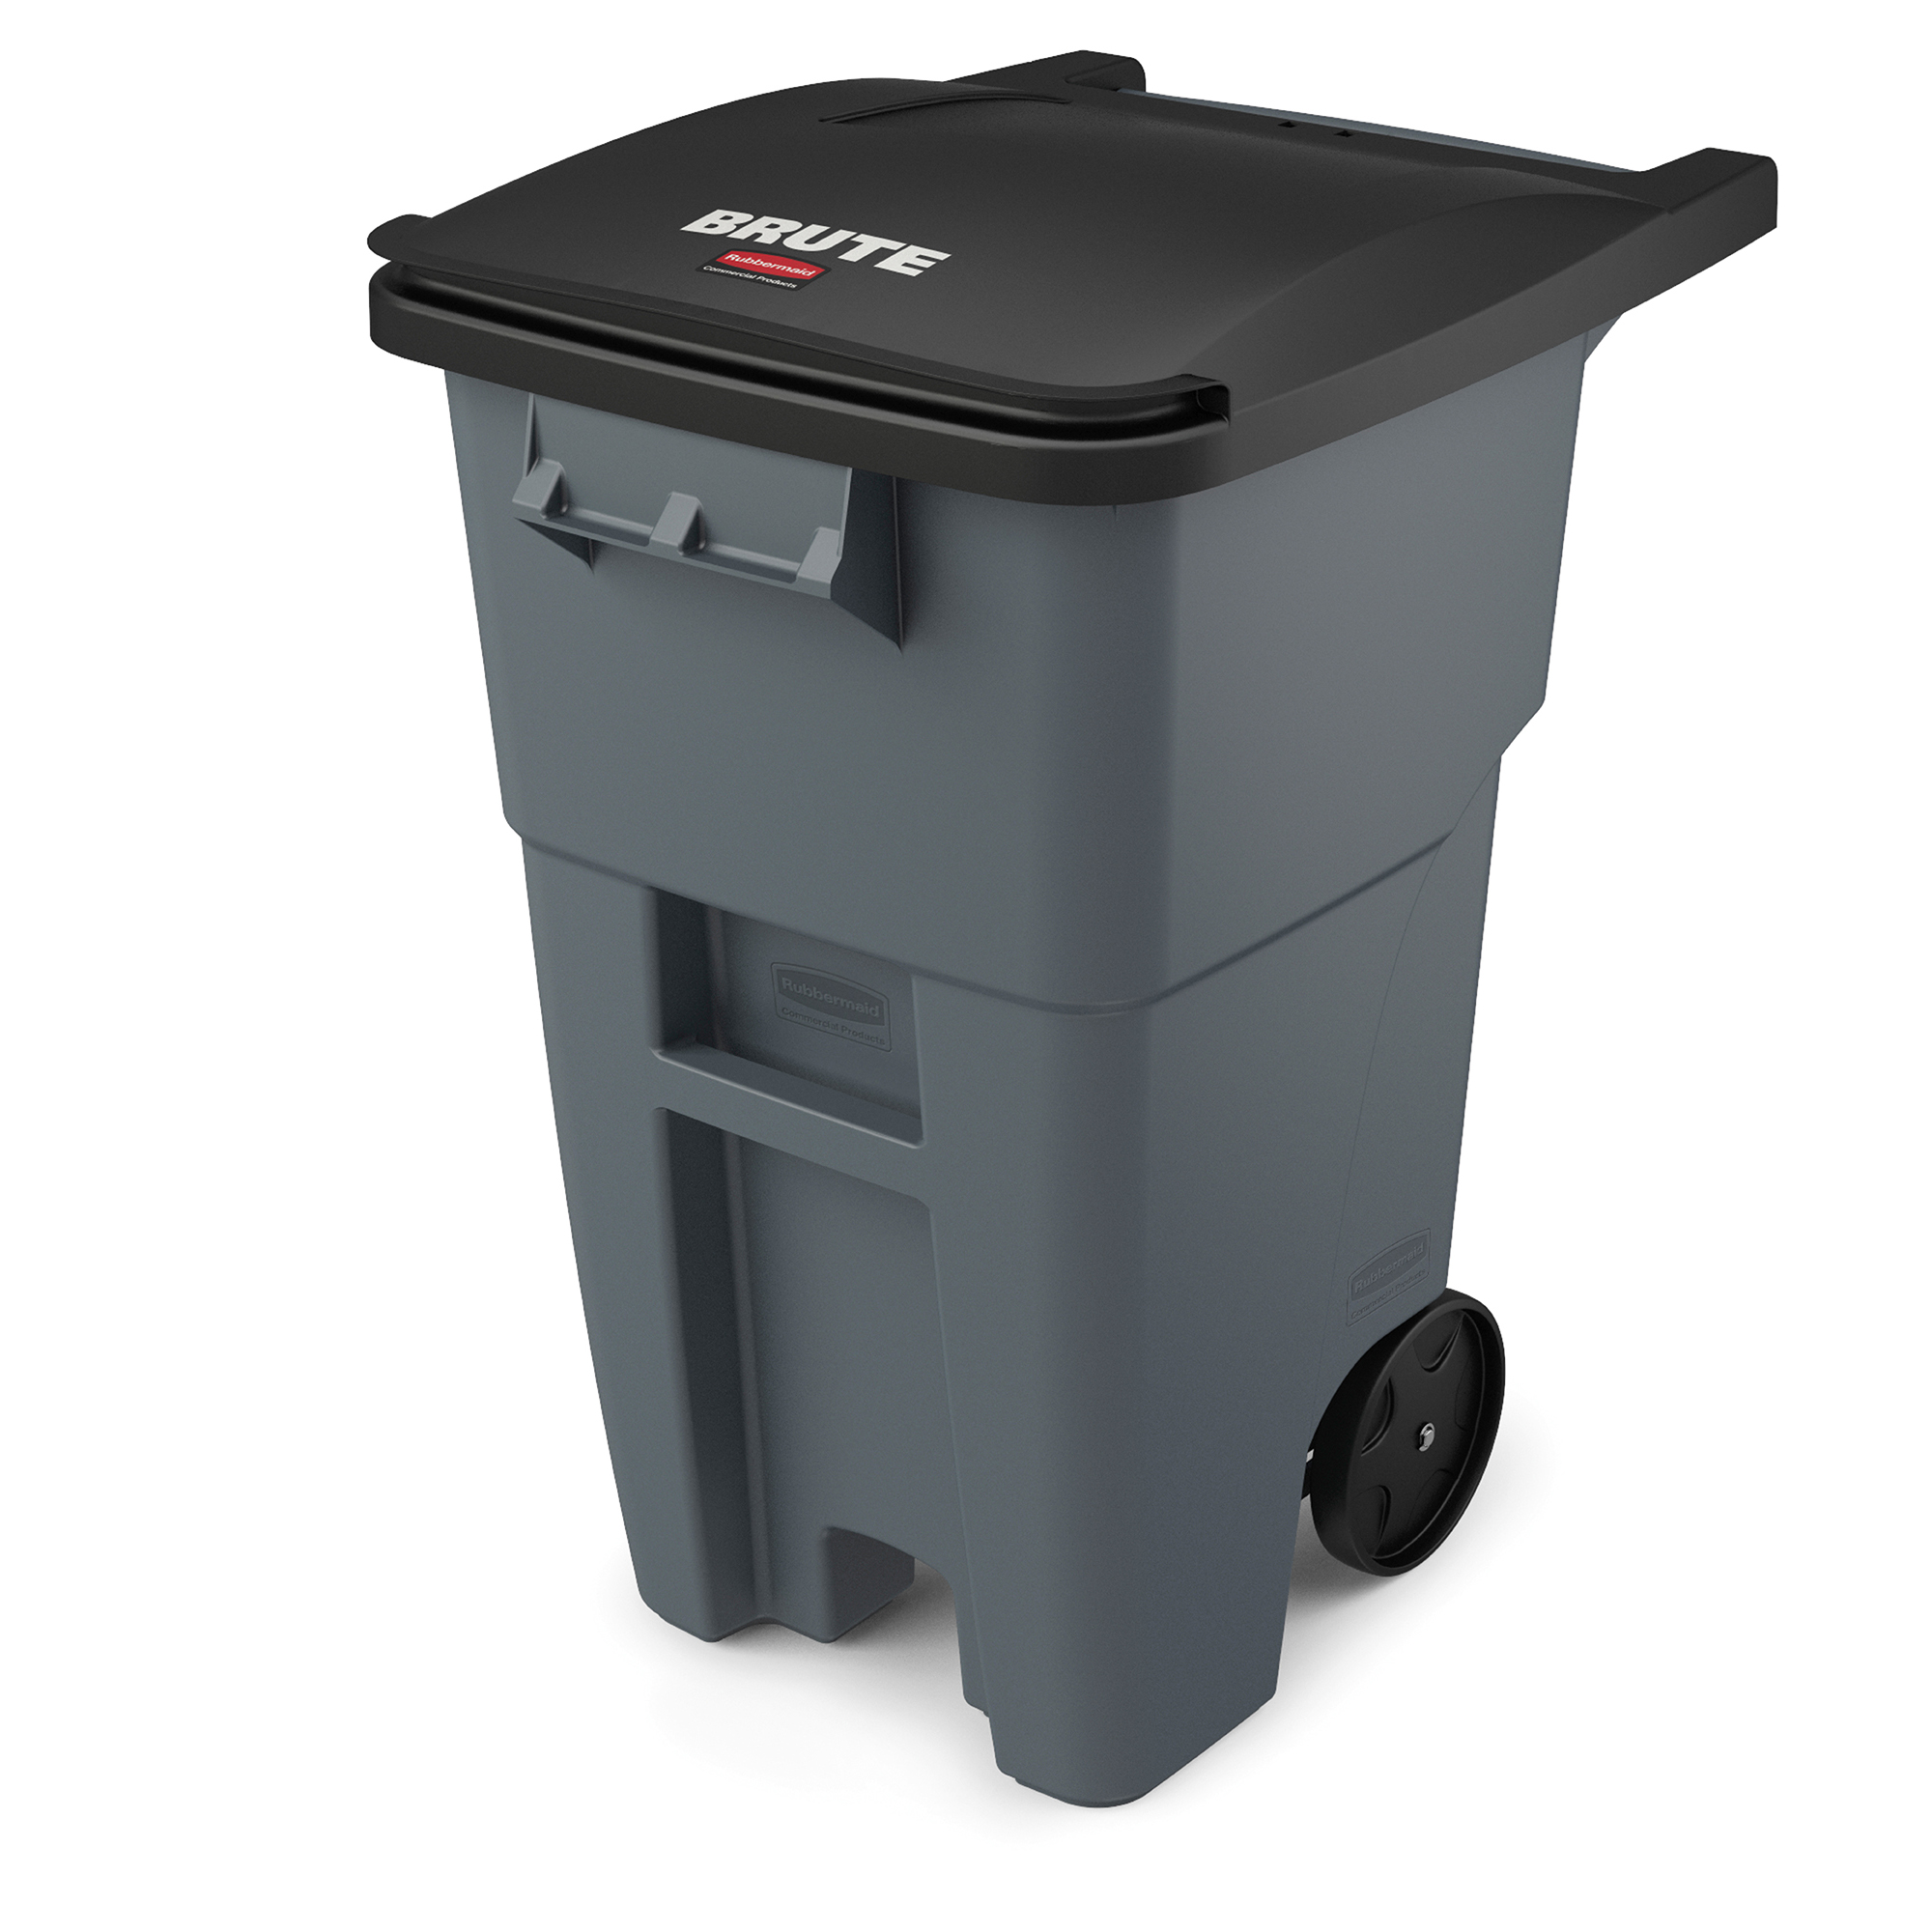 Rubbermaid Commercial Products FG9W2700GRAY BRUTE Roll-Out Trash Can with Lid, Square, 50 Gallon, Gray by Newell Brands